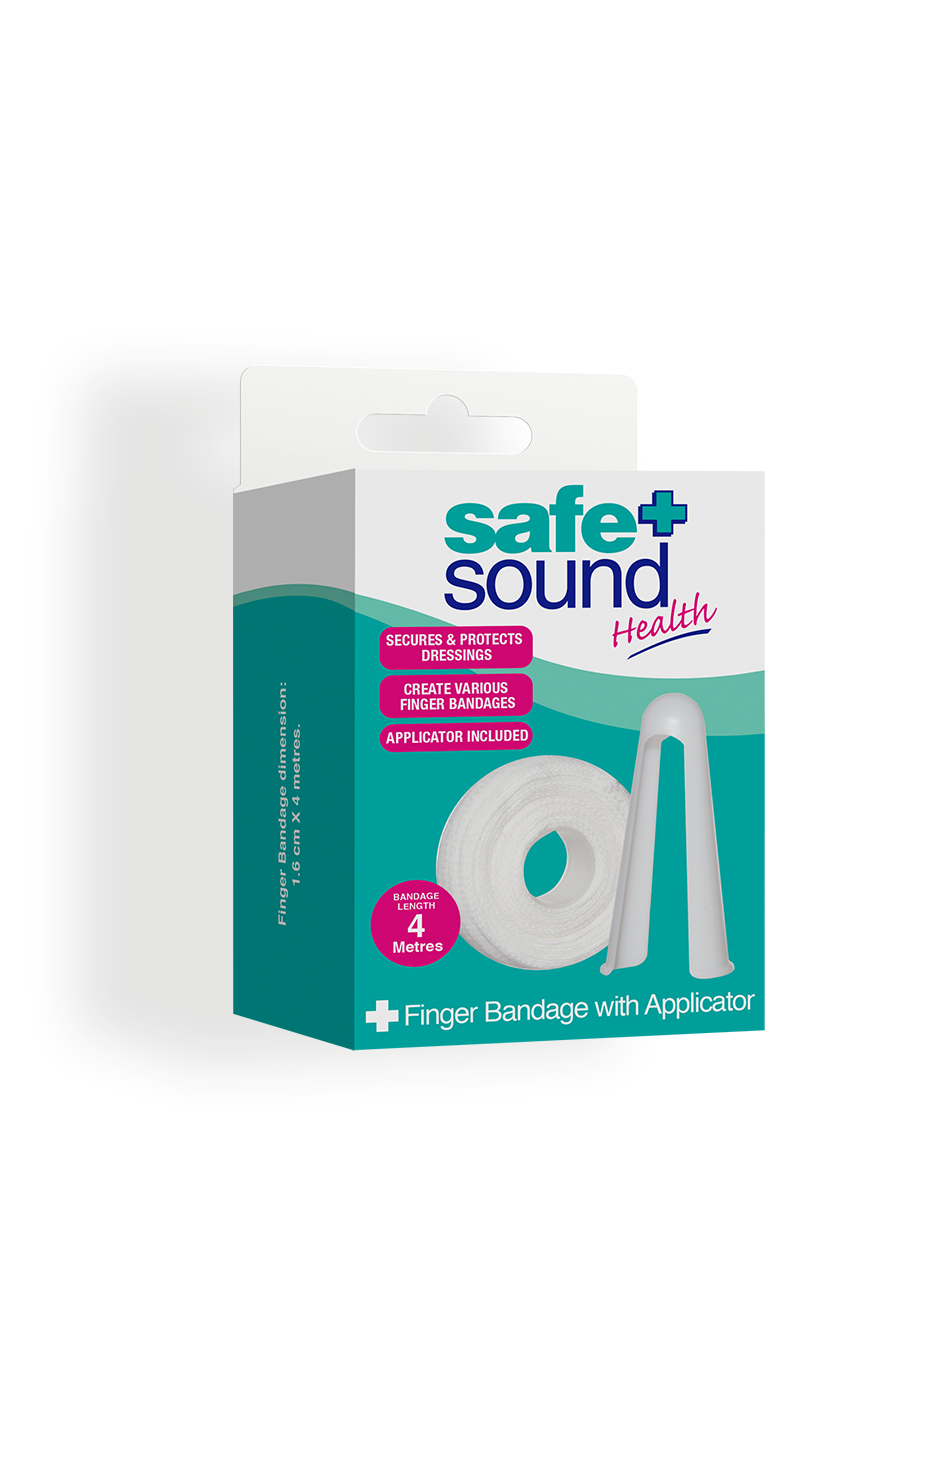 Safe and Sound Health Finger Bandage and Applicator